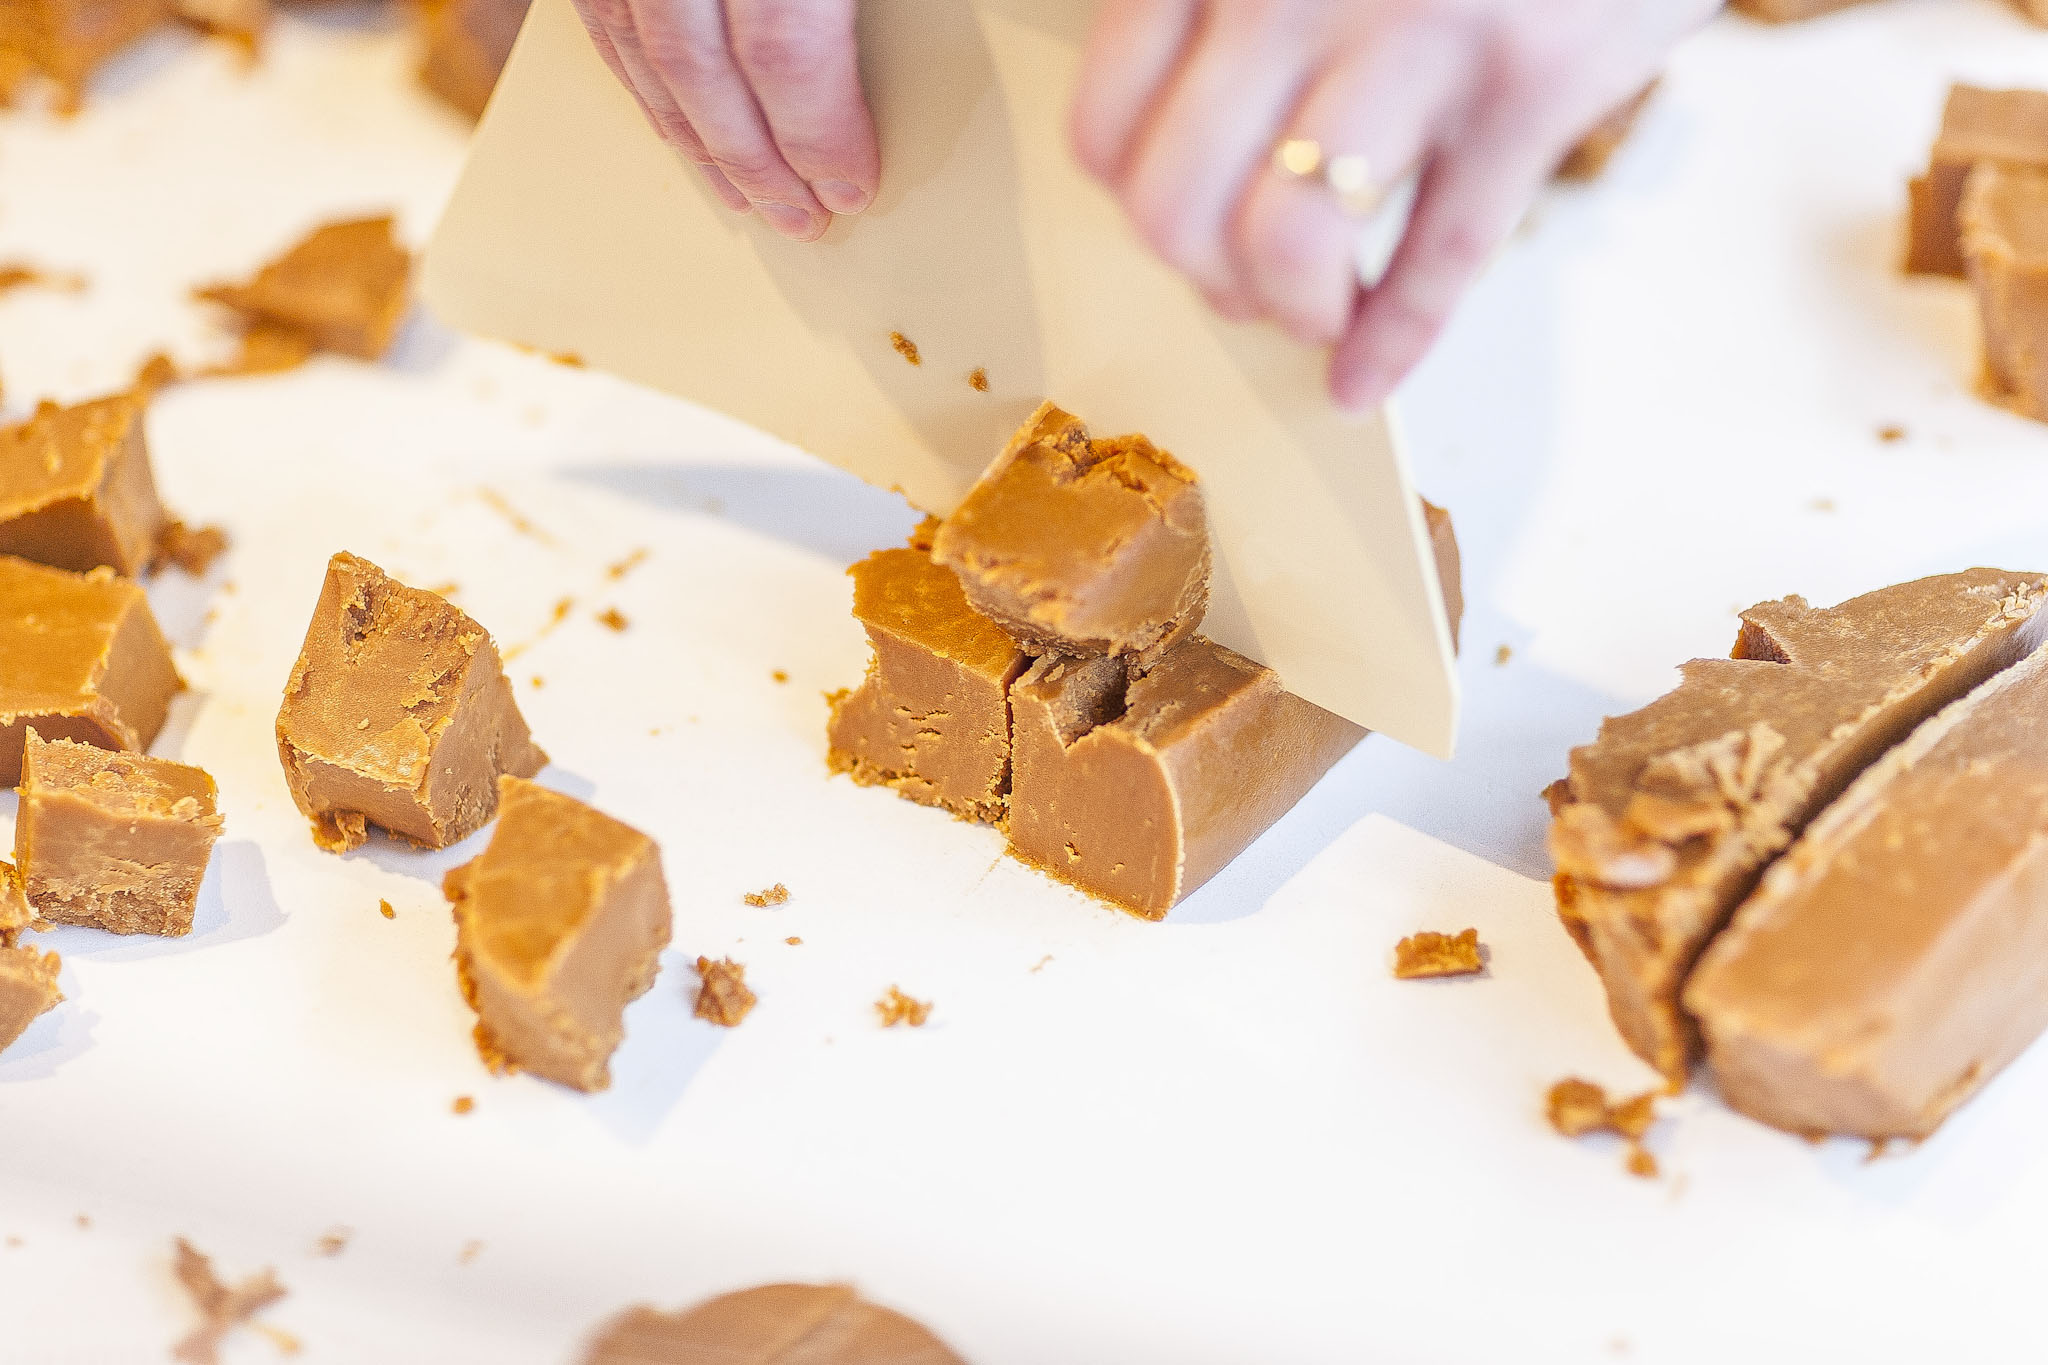 Step 5 - Cutting our fudge